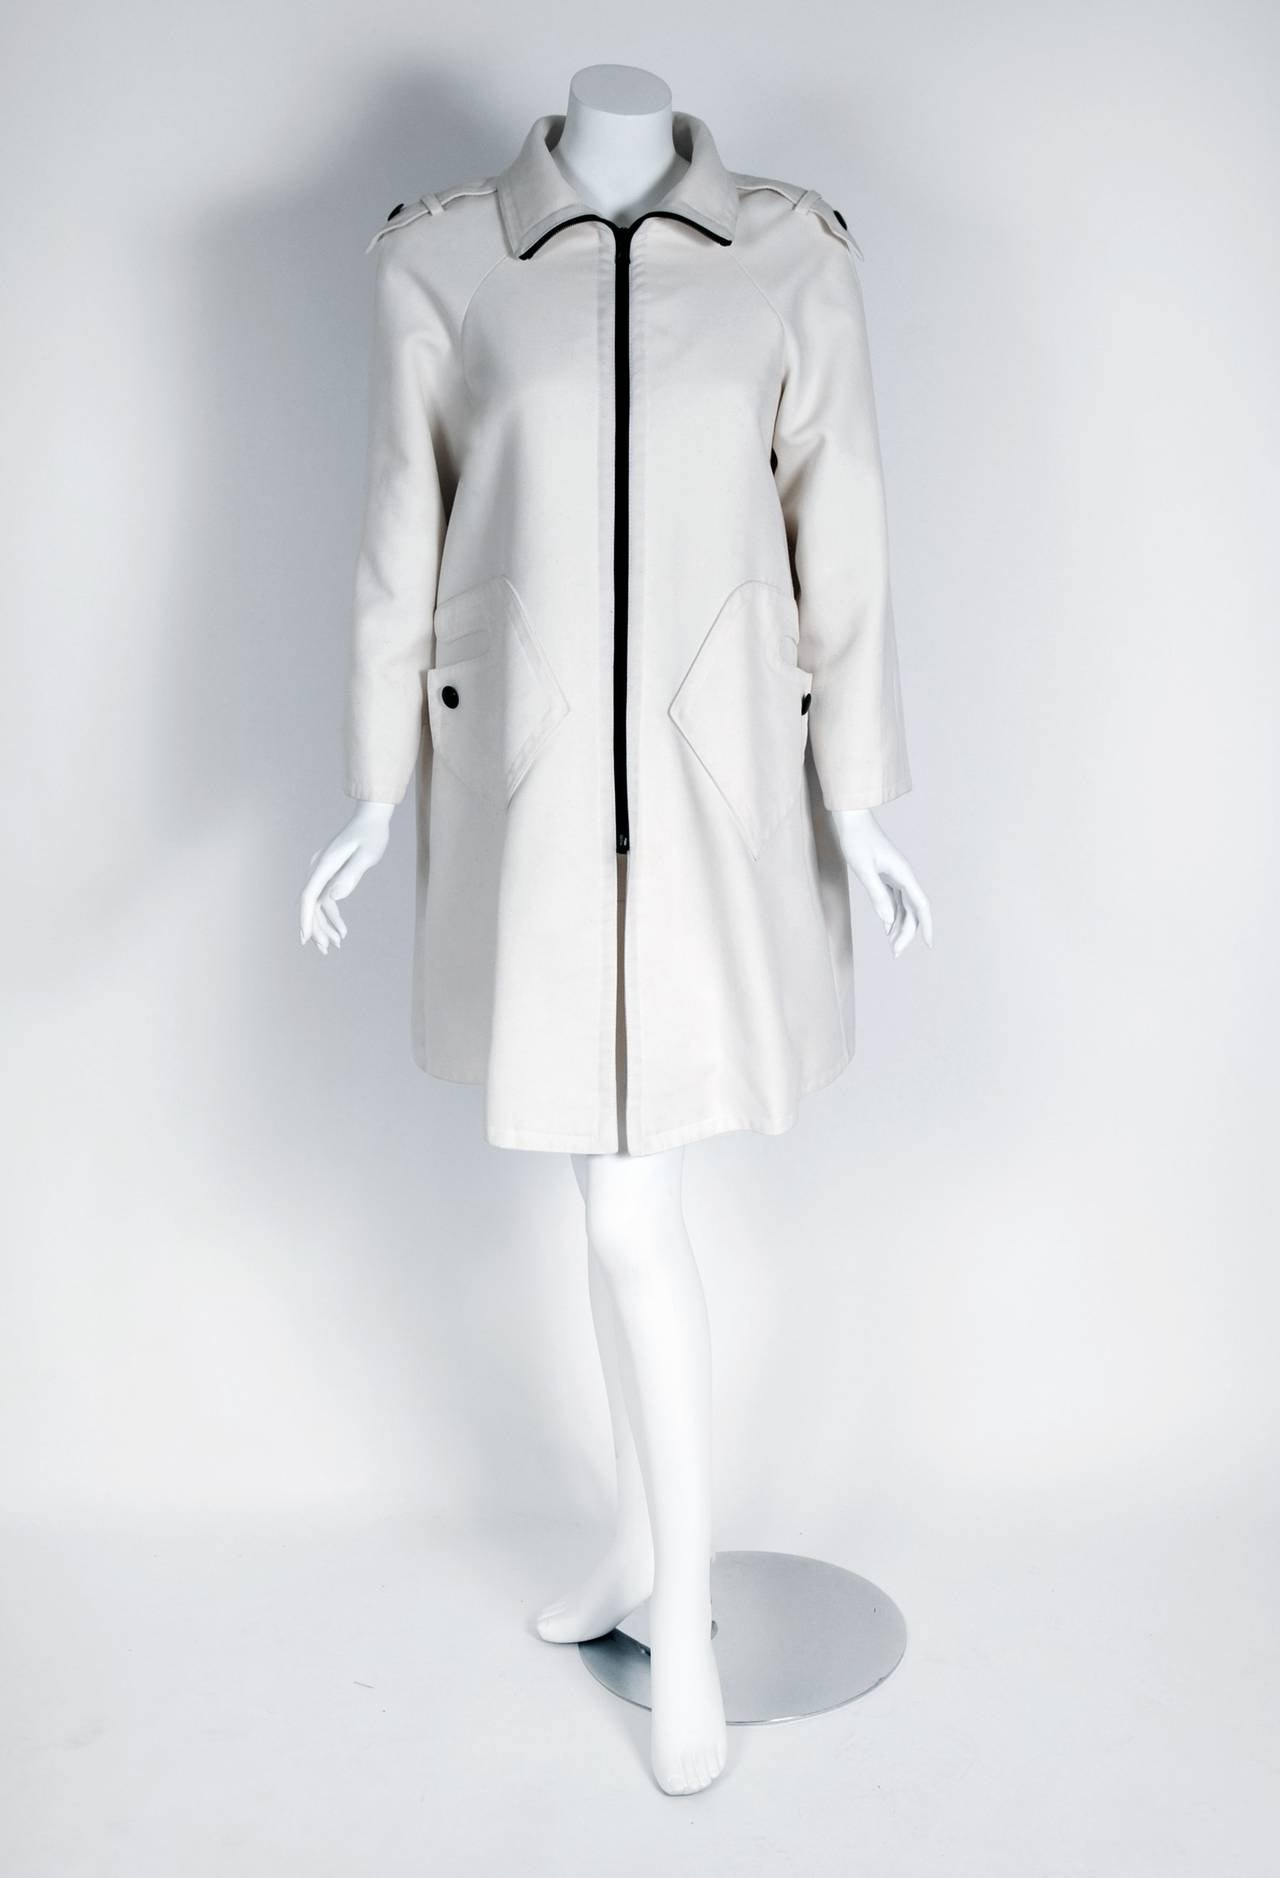 1968 Pierre Cardin Ivory White Cotton-Twill Mod Space-Age Pockets Trench Jacket 2